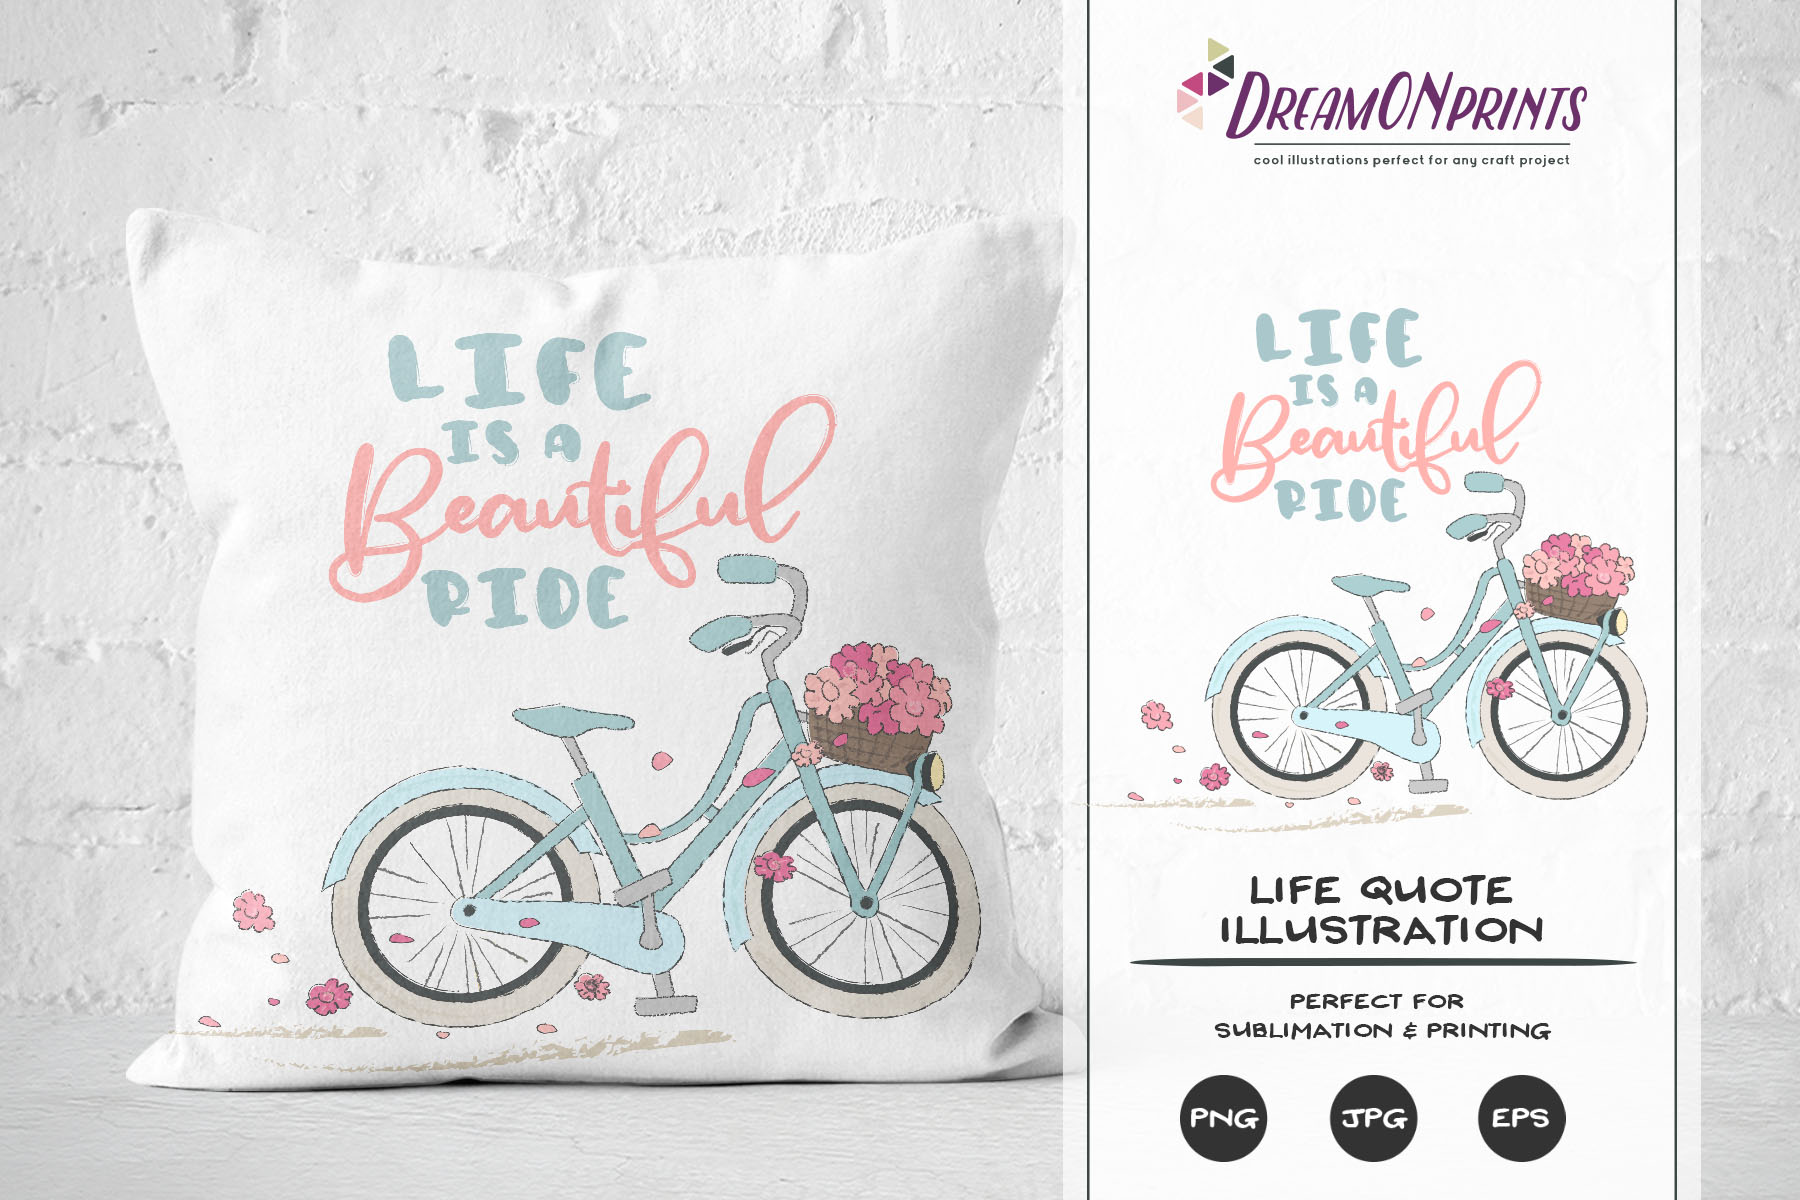 Life is a Beautiful Ride | Sublimation Life Quote with Bike example image 1